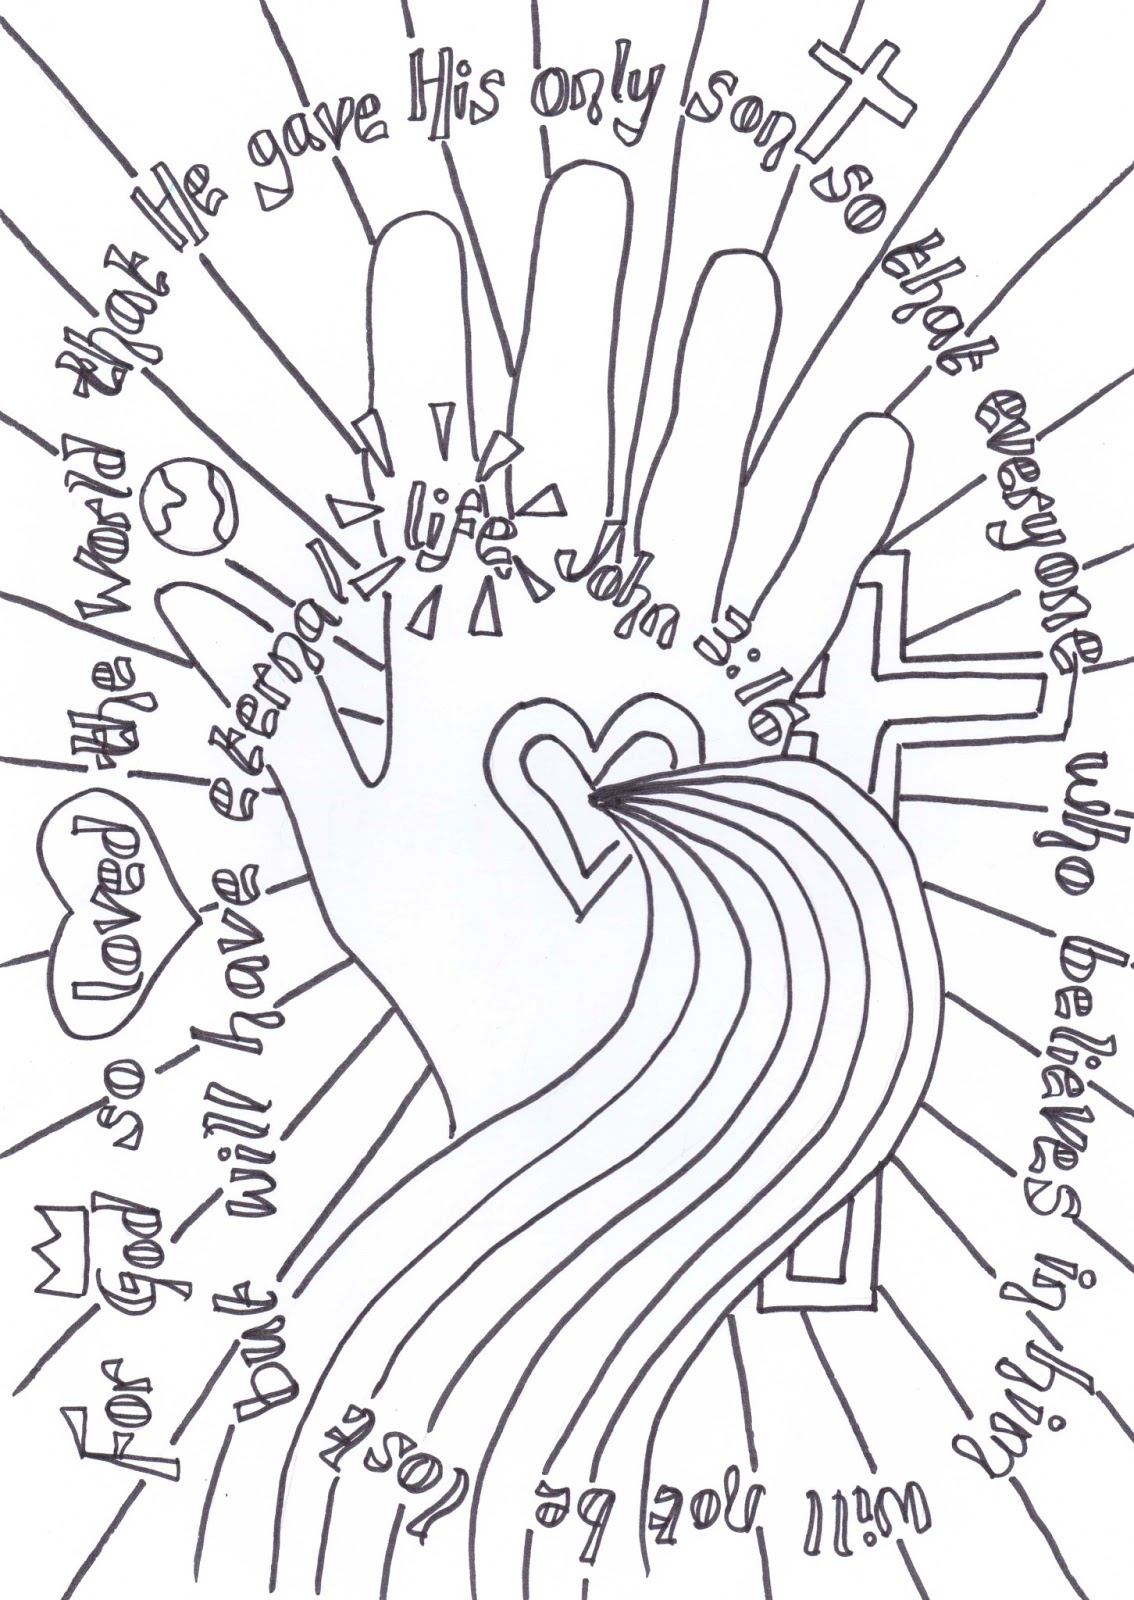 Flame: Creative Children's Ministry: John 3:16 verse to colour